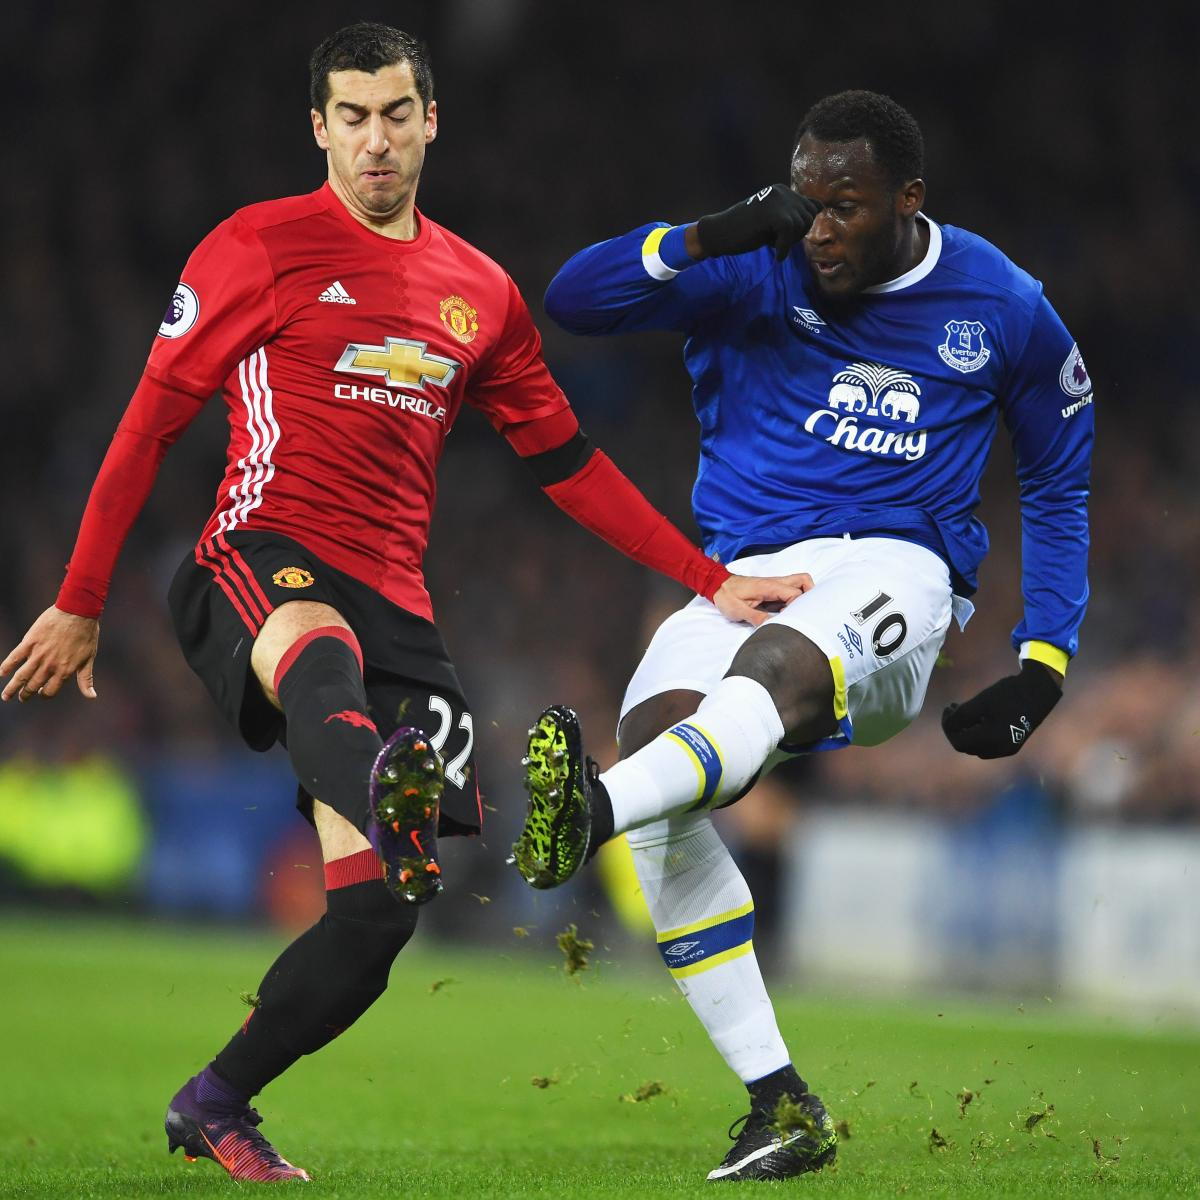 Everton Vs Manchester United Live Score Highlights From Premier League Game Bleacher Report Latest News Videos And Highlights